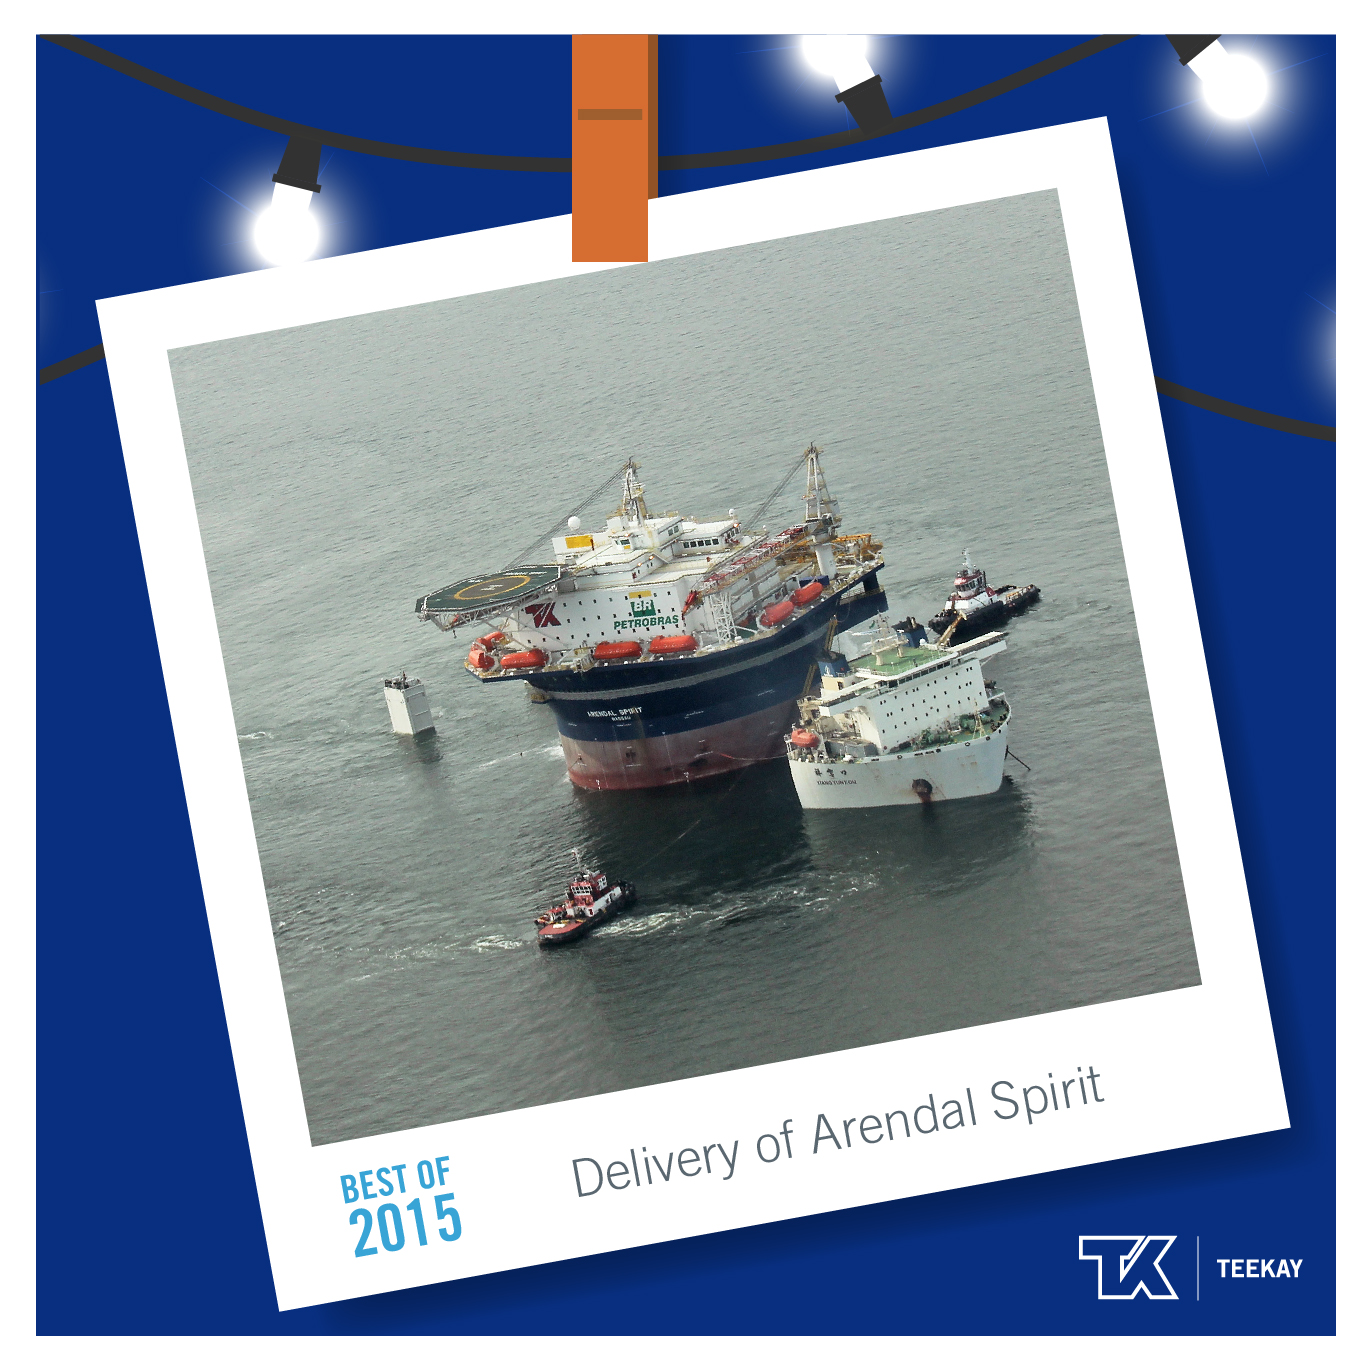 #2 Delivery of Arendal Spirit